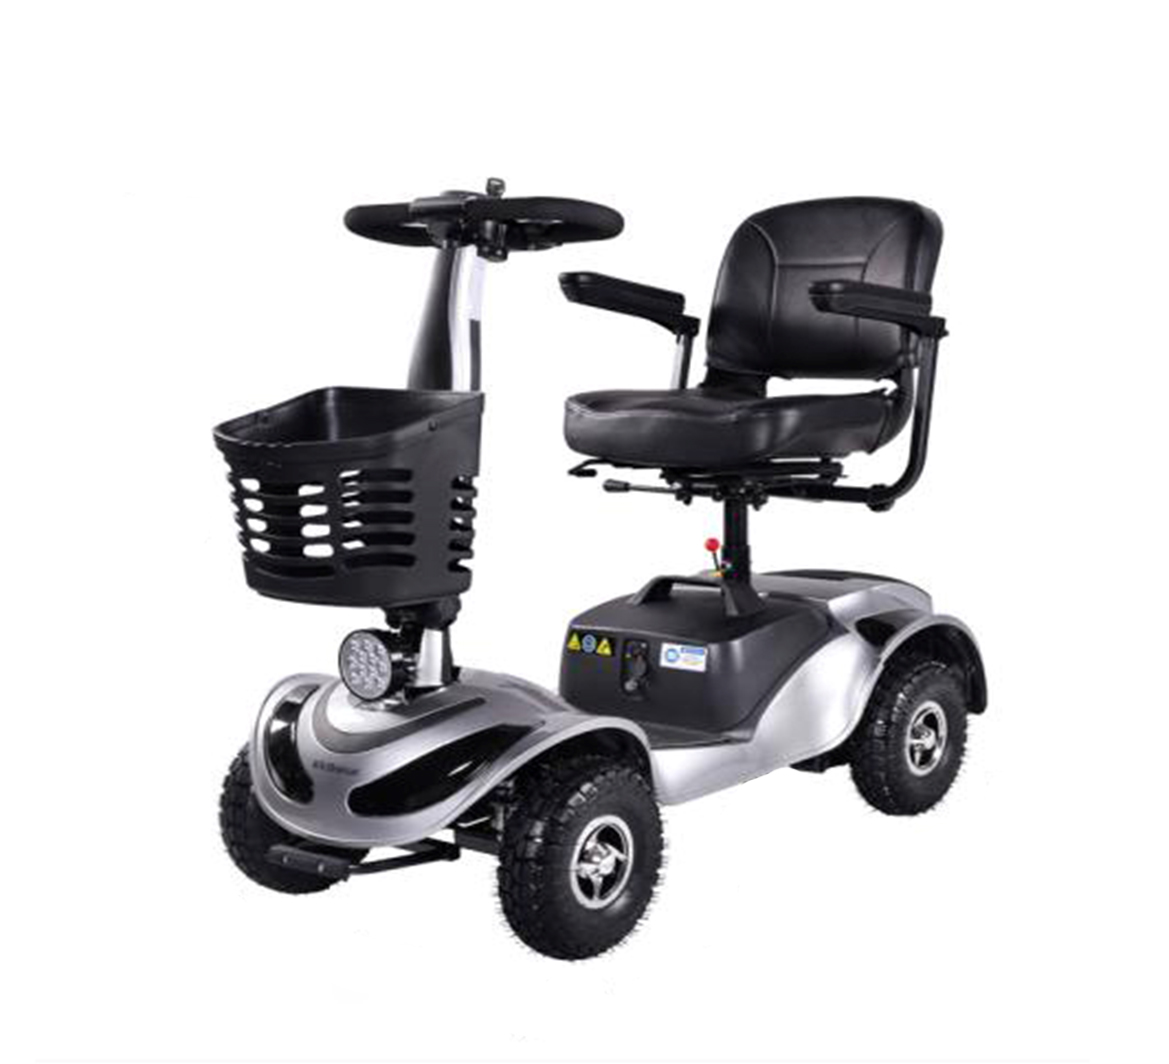 TBY3500 1 - TBY-3500 Mobility-way